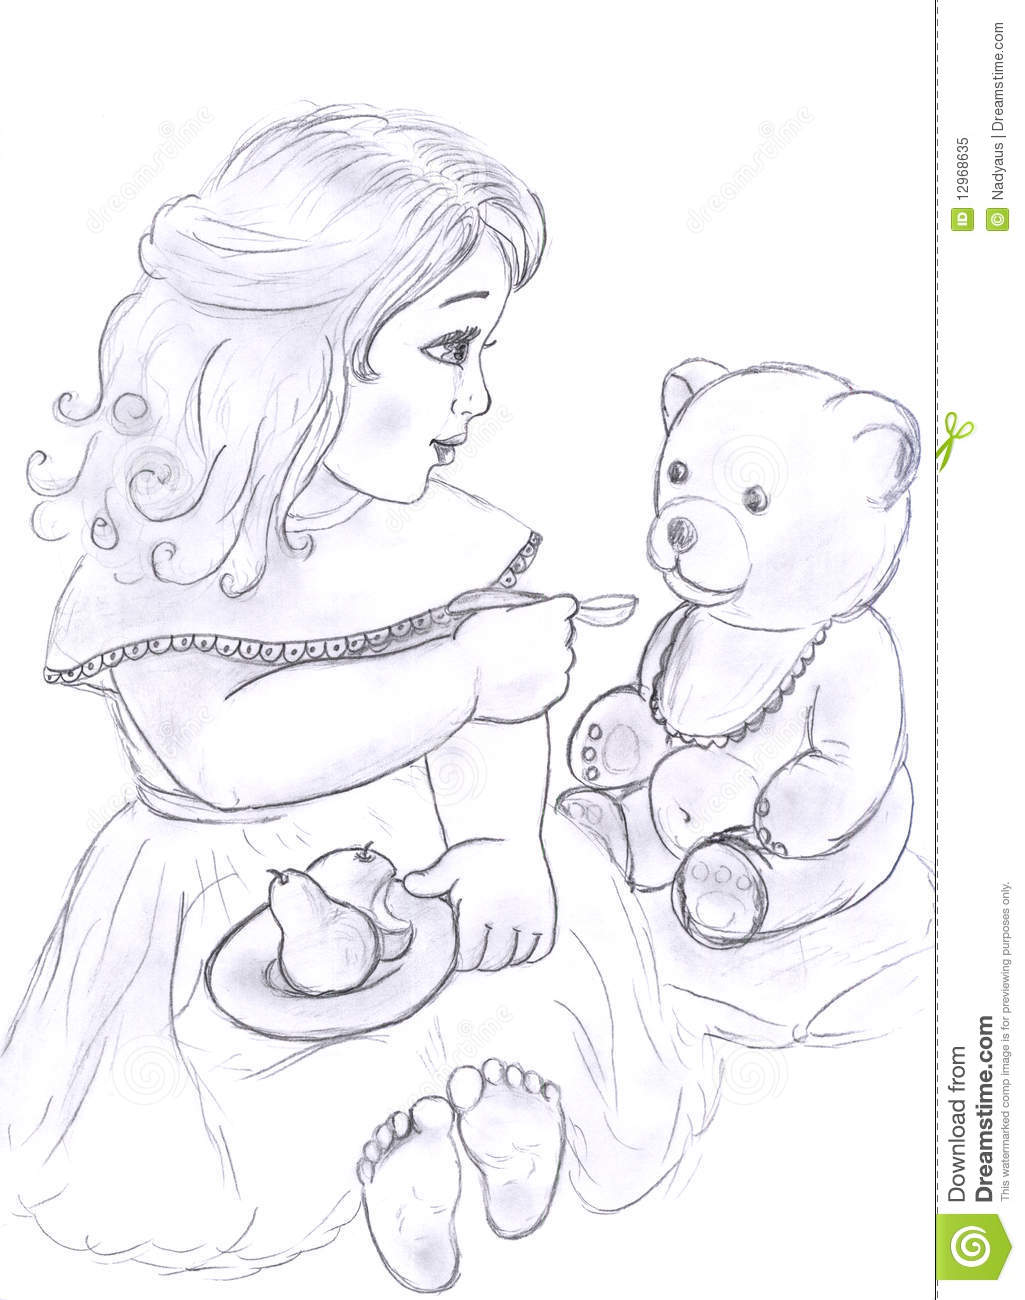 Little girl with bear toy sketch stock illustration illustration